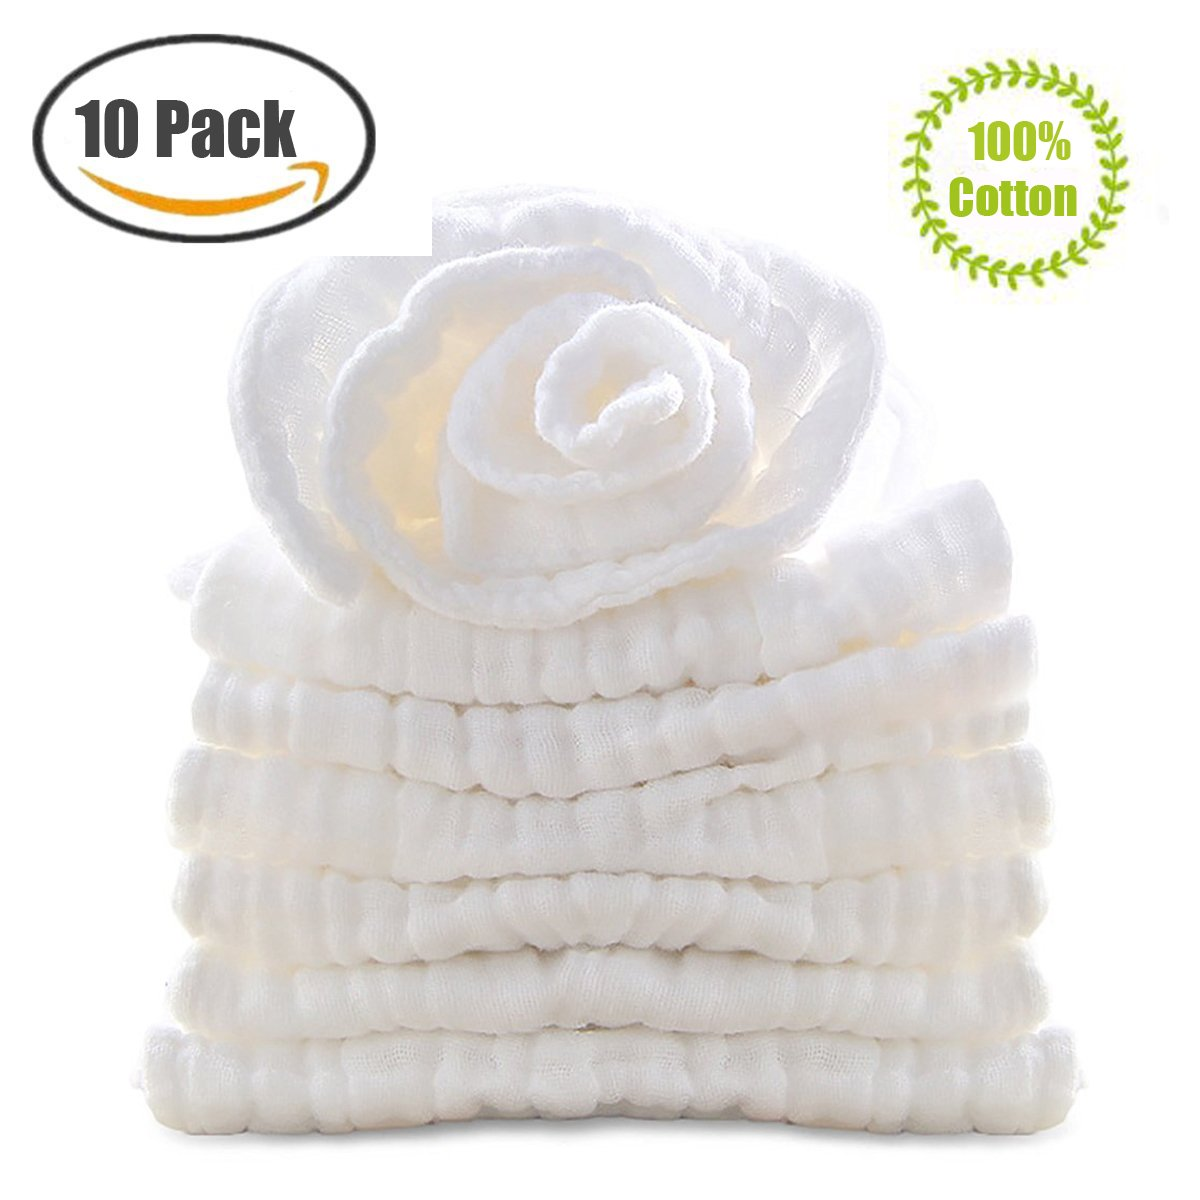 BWINKA 10-Pack Gauze Muslin Square,11x11 Organics Baby Washcloths, Premium Reusable Wipes - Extra Soft For Sensitive Skin,Newborn Muslin Warm Baby Bath Towels Pure White